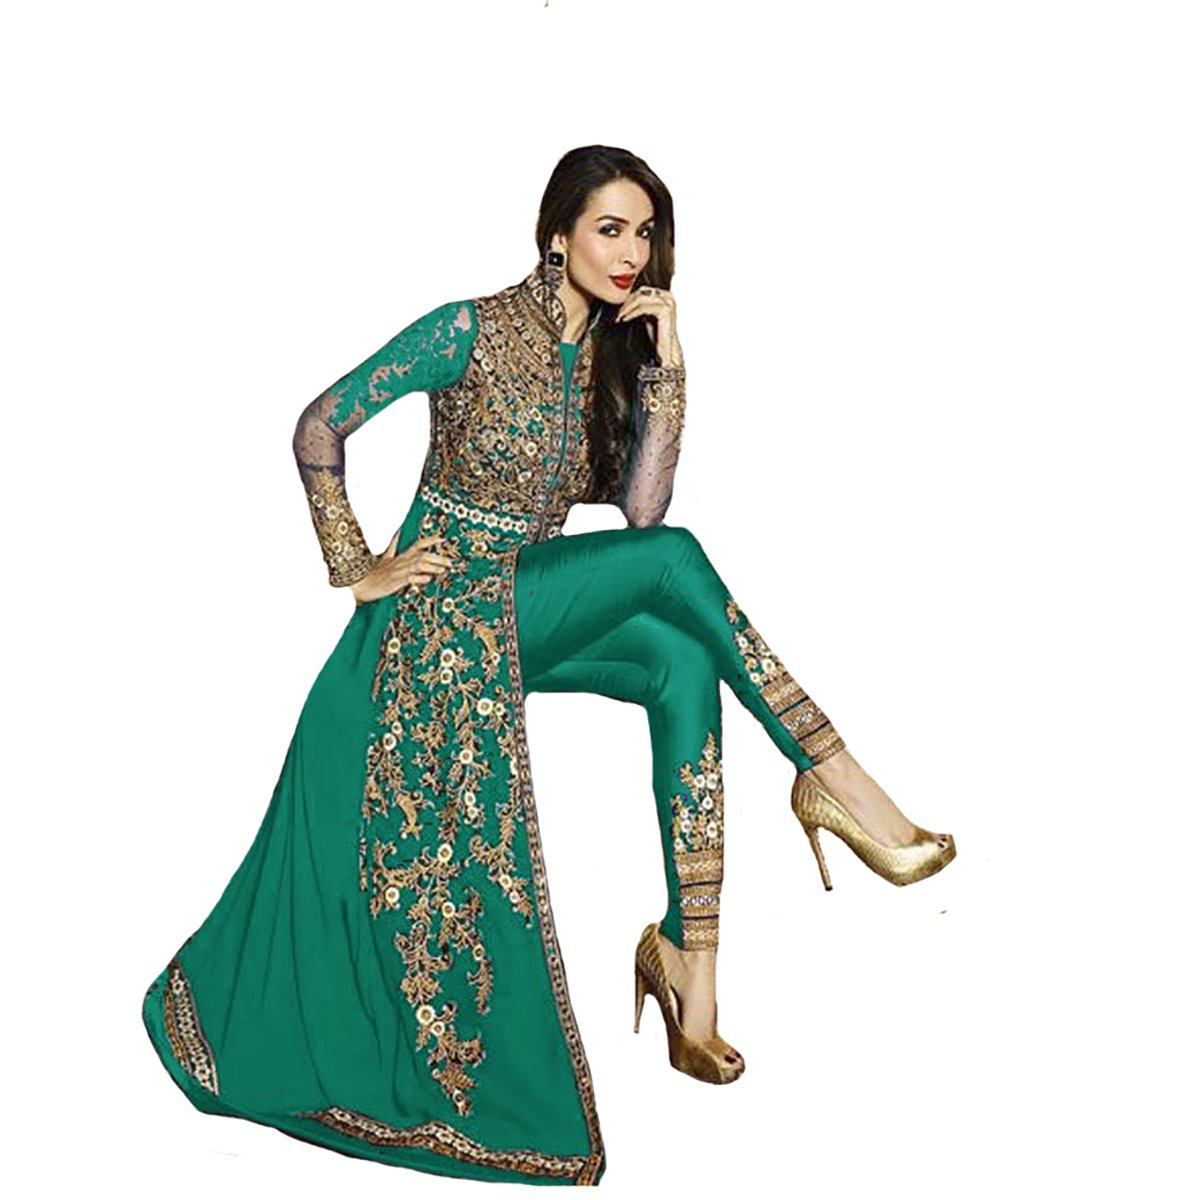 Georgette Party wear Anarkali Salwar Kameez Suit Dupatta Ceremony Hit R